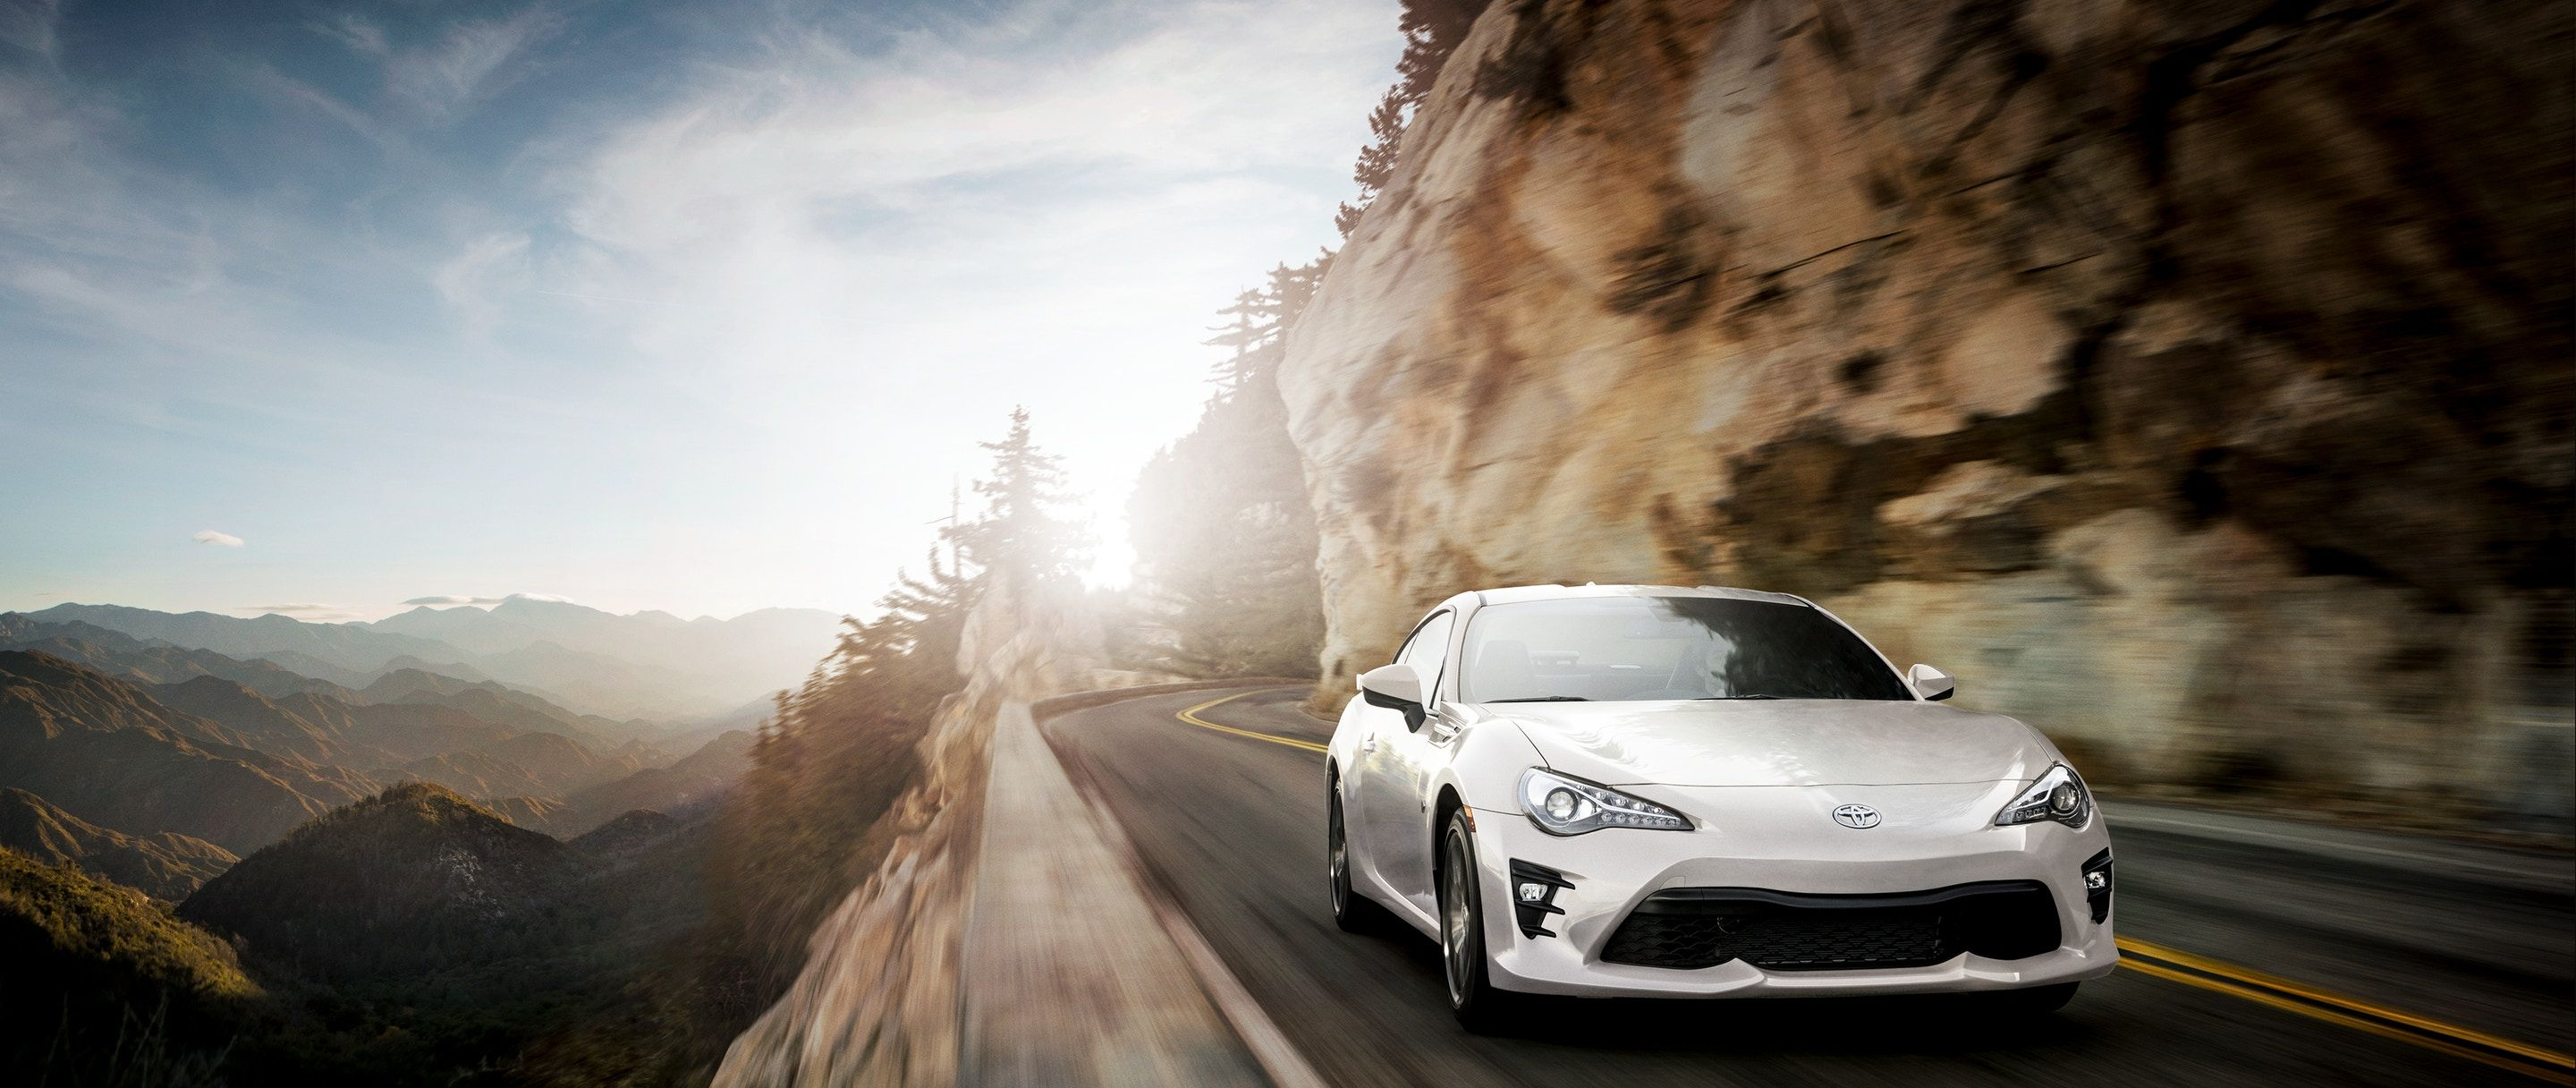 2019 Toyota 86 for Sale in Kansas City, MO